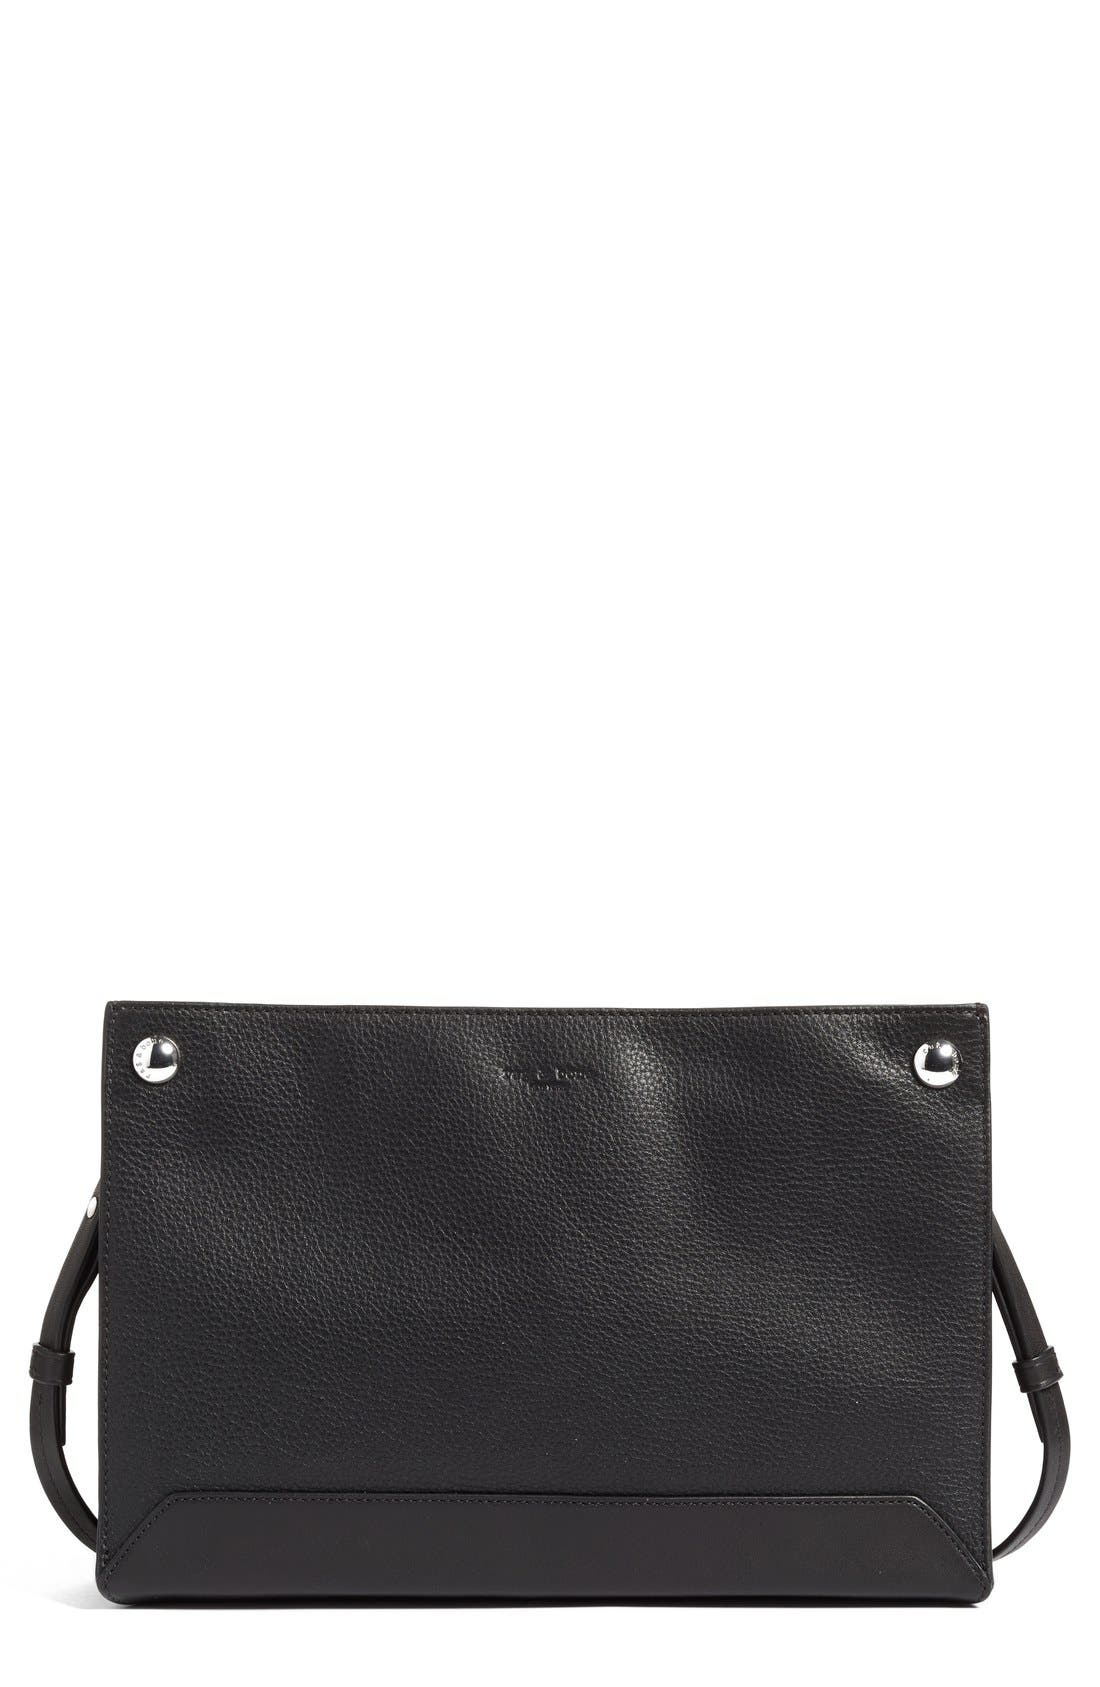 Compass Leather Crossbody Bag,                         Main,                         color, Black